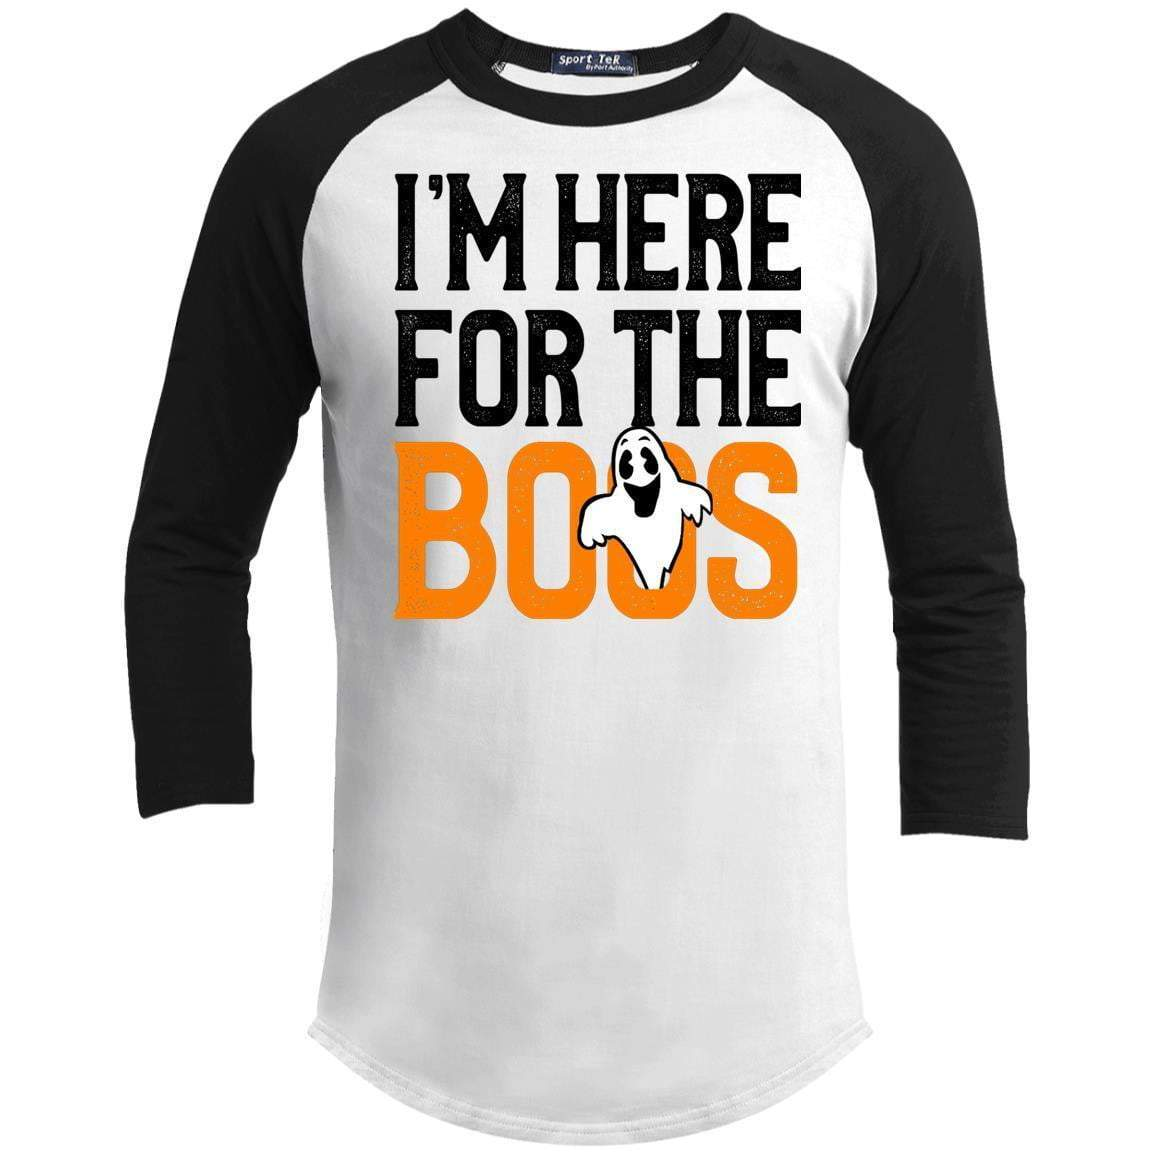 I'M HERE FOR THE BOOS Unisex 3/4 Sleeve Raglan